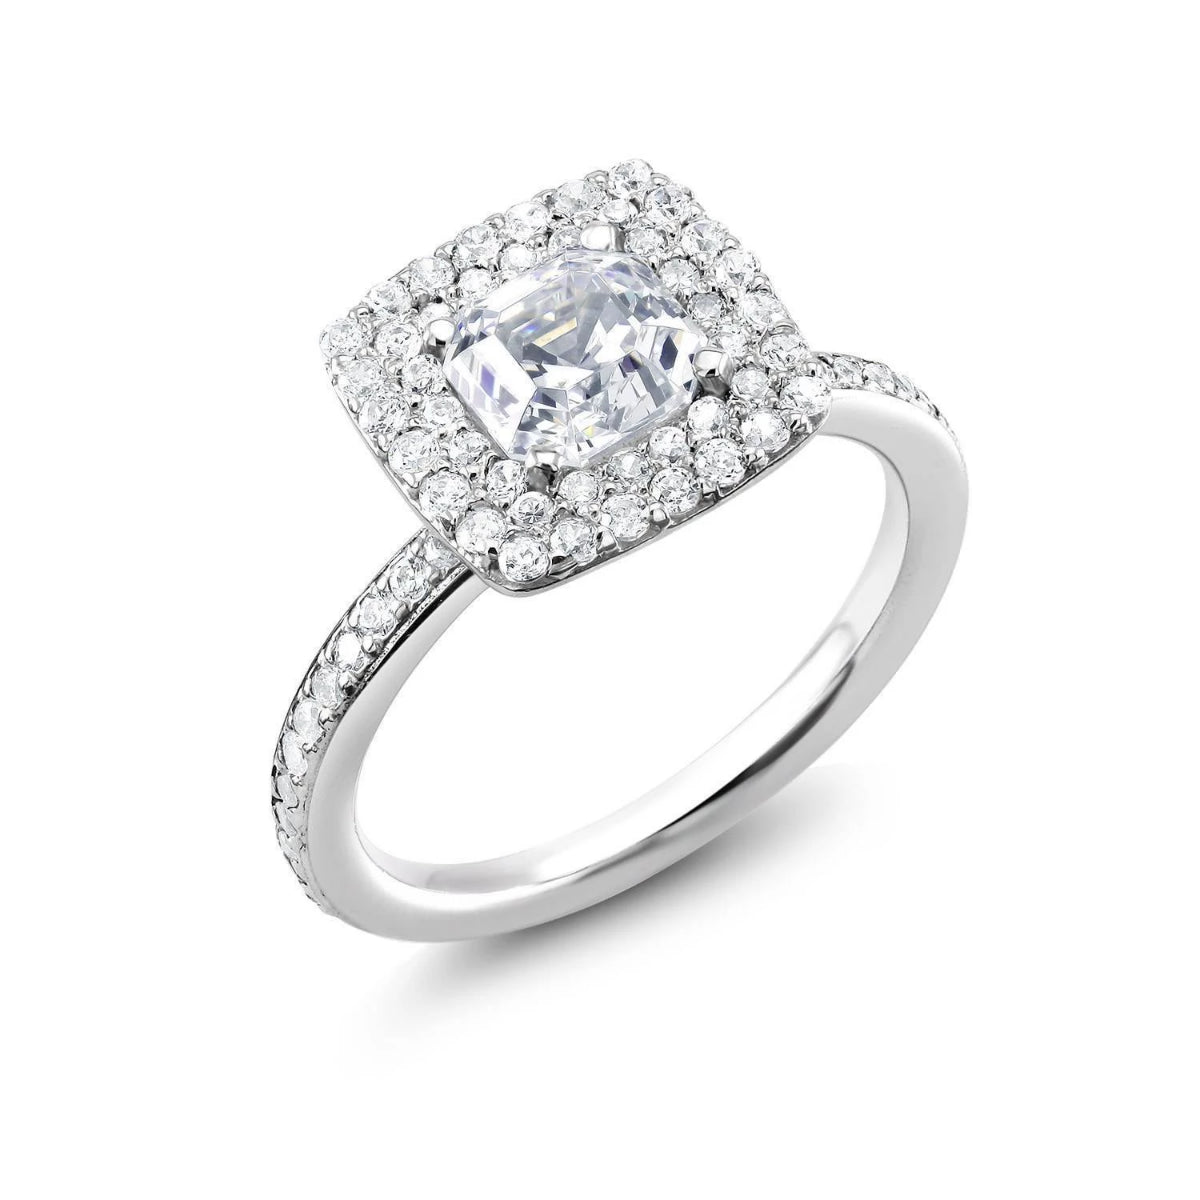 not love we point to your our buy only collection best quality are crafting dedicated the through diamond assurance you ourprocess sylvie ensuring rings ll process engagement can glamorous